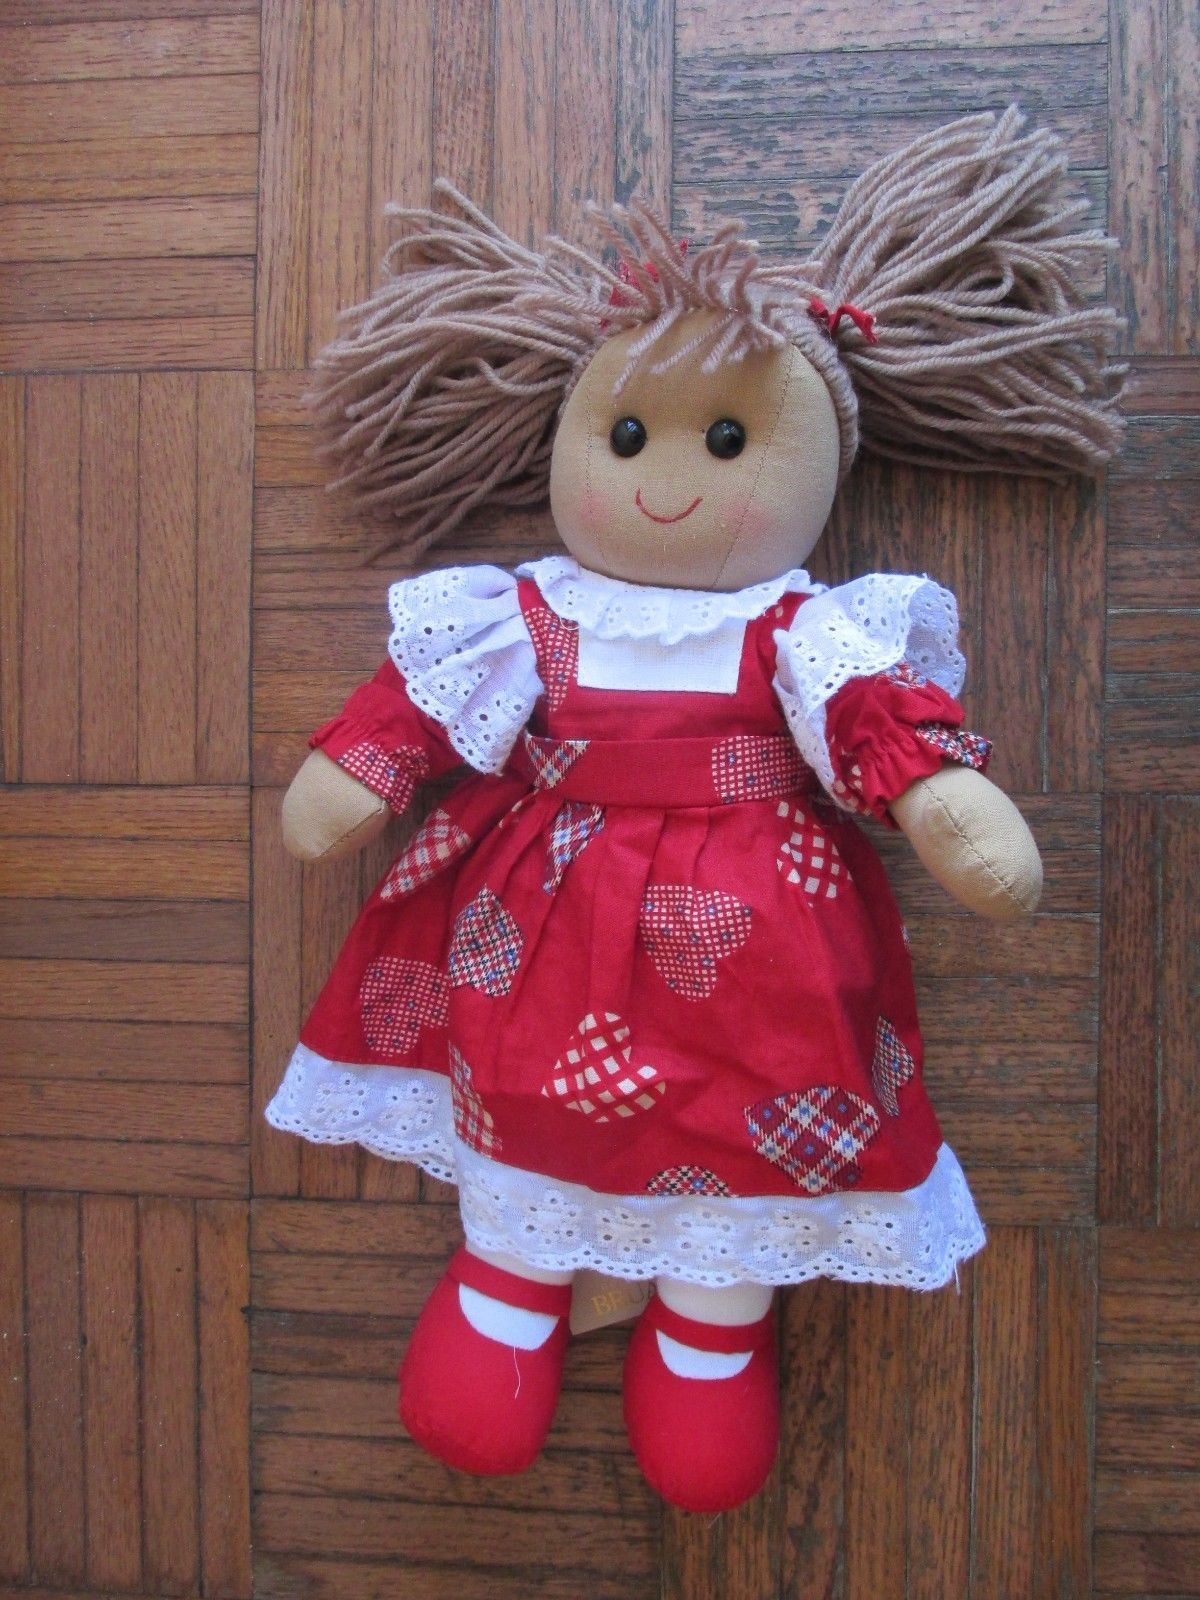 House of Bruar Scotland Rag Doll NWT Red Heart Jumper Dress Pig Tails cute